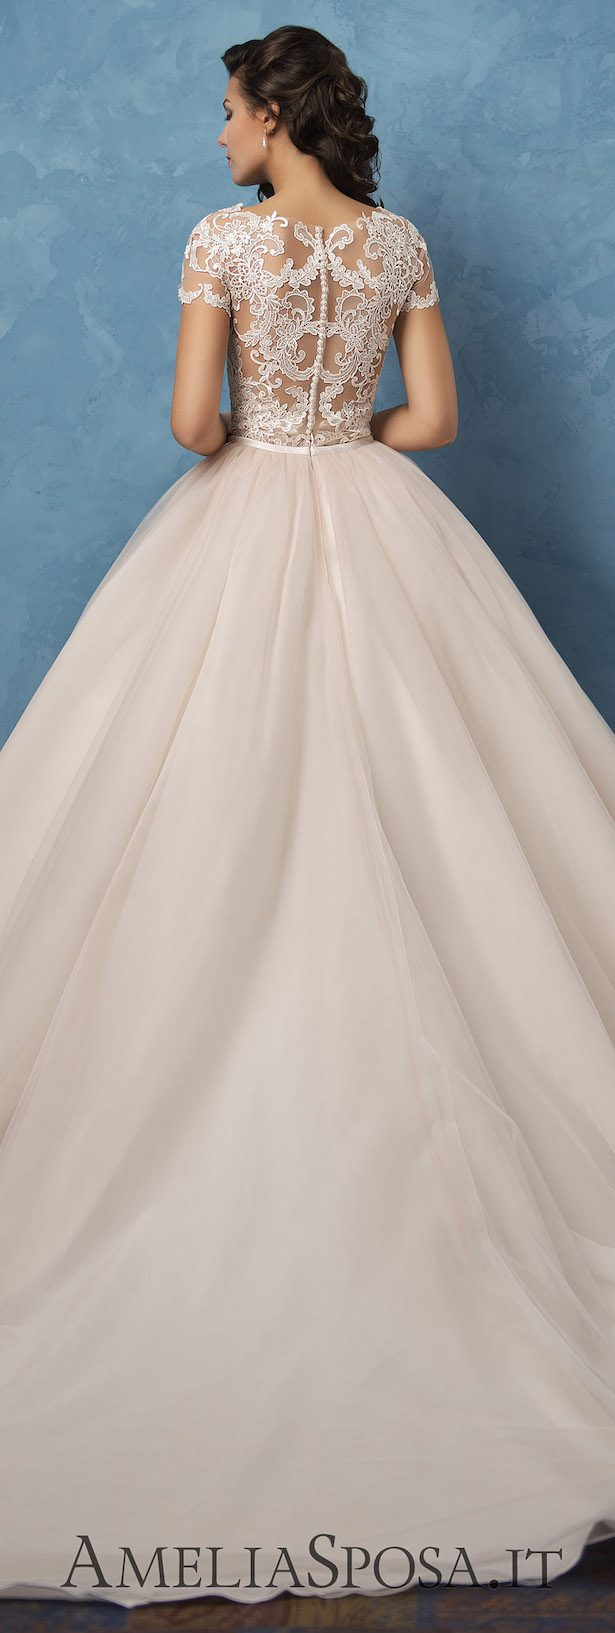 Best Wedding Dresses of 2017 - Wedding Dress by Amelia Sposa 2017 - Royal Blue Collection